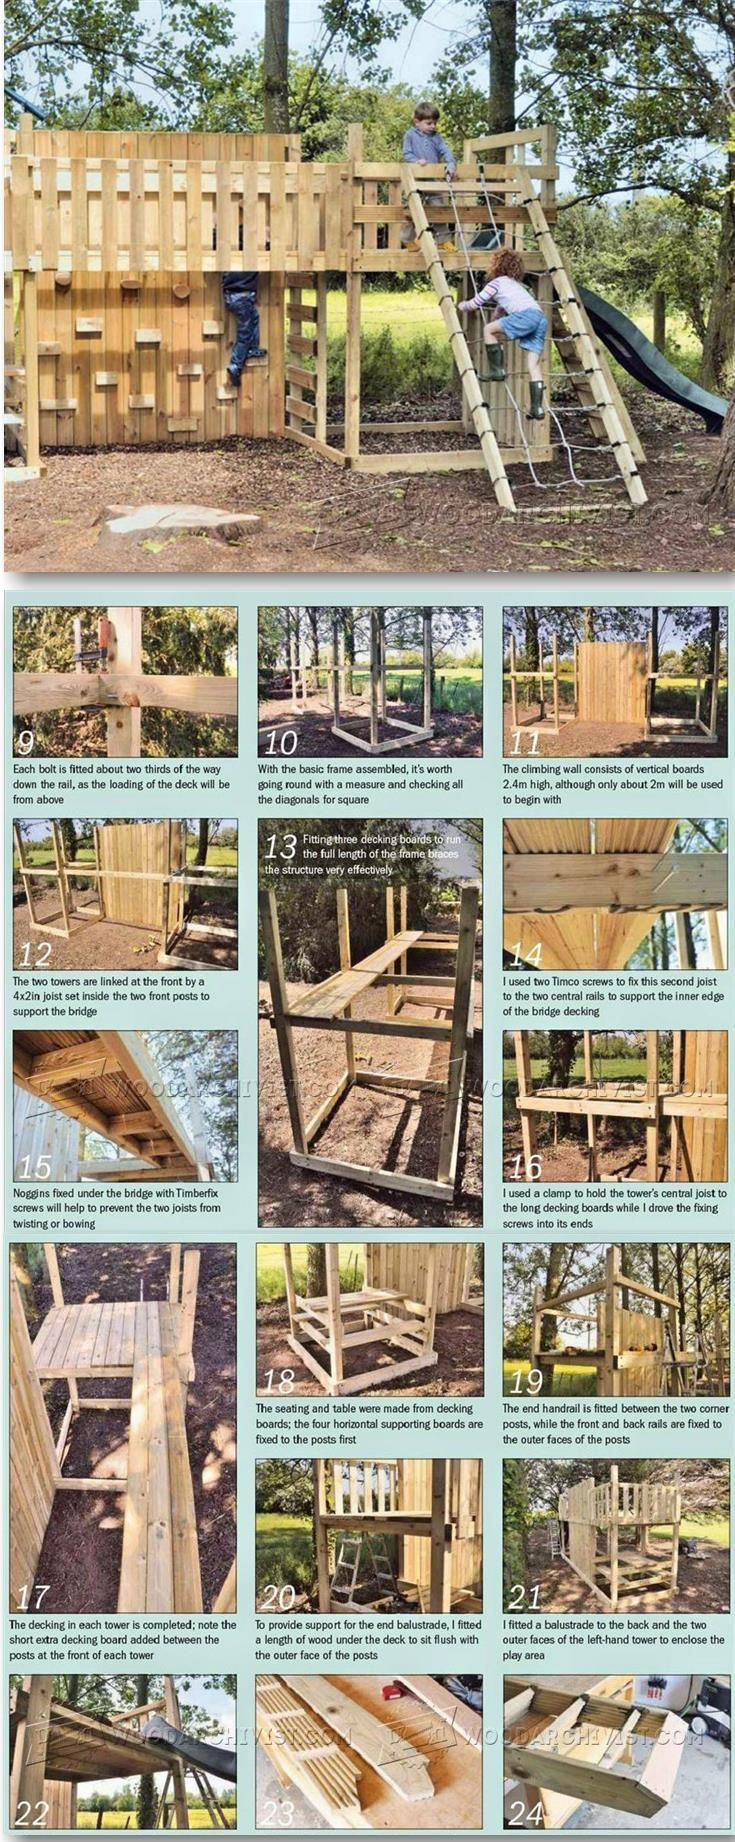 Kids Climbing Frame Plans - Children\'s Outdoor Plans and Projects ...